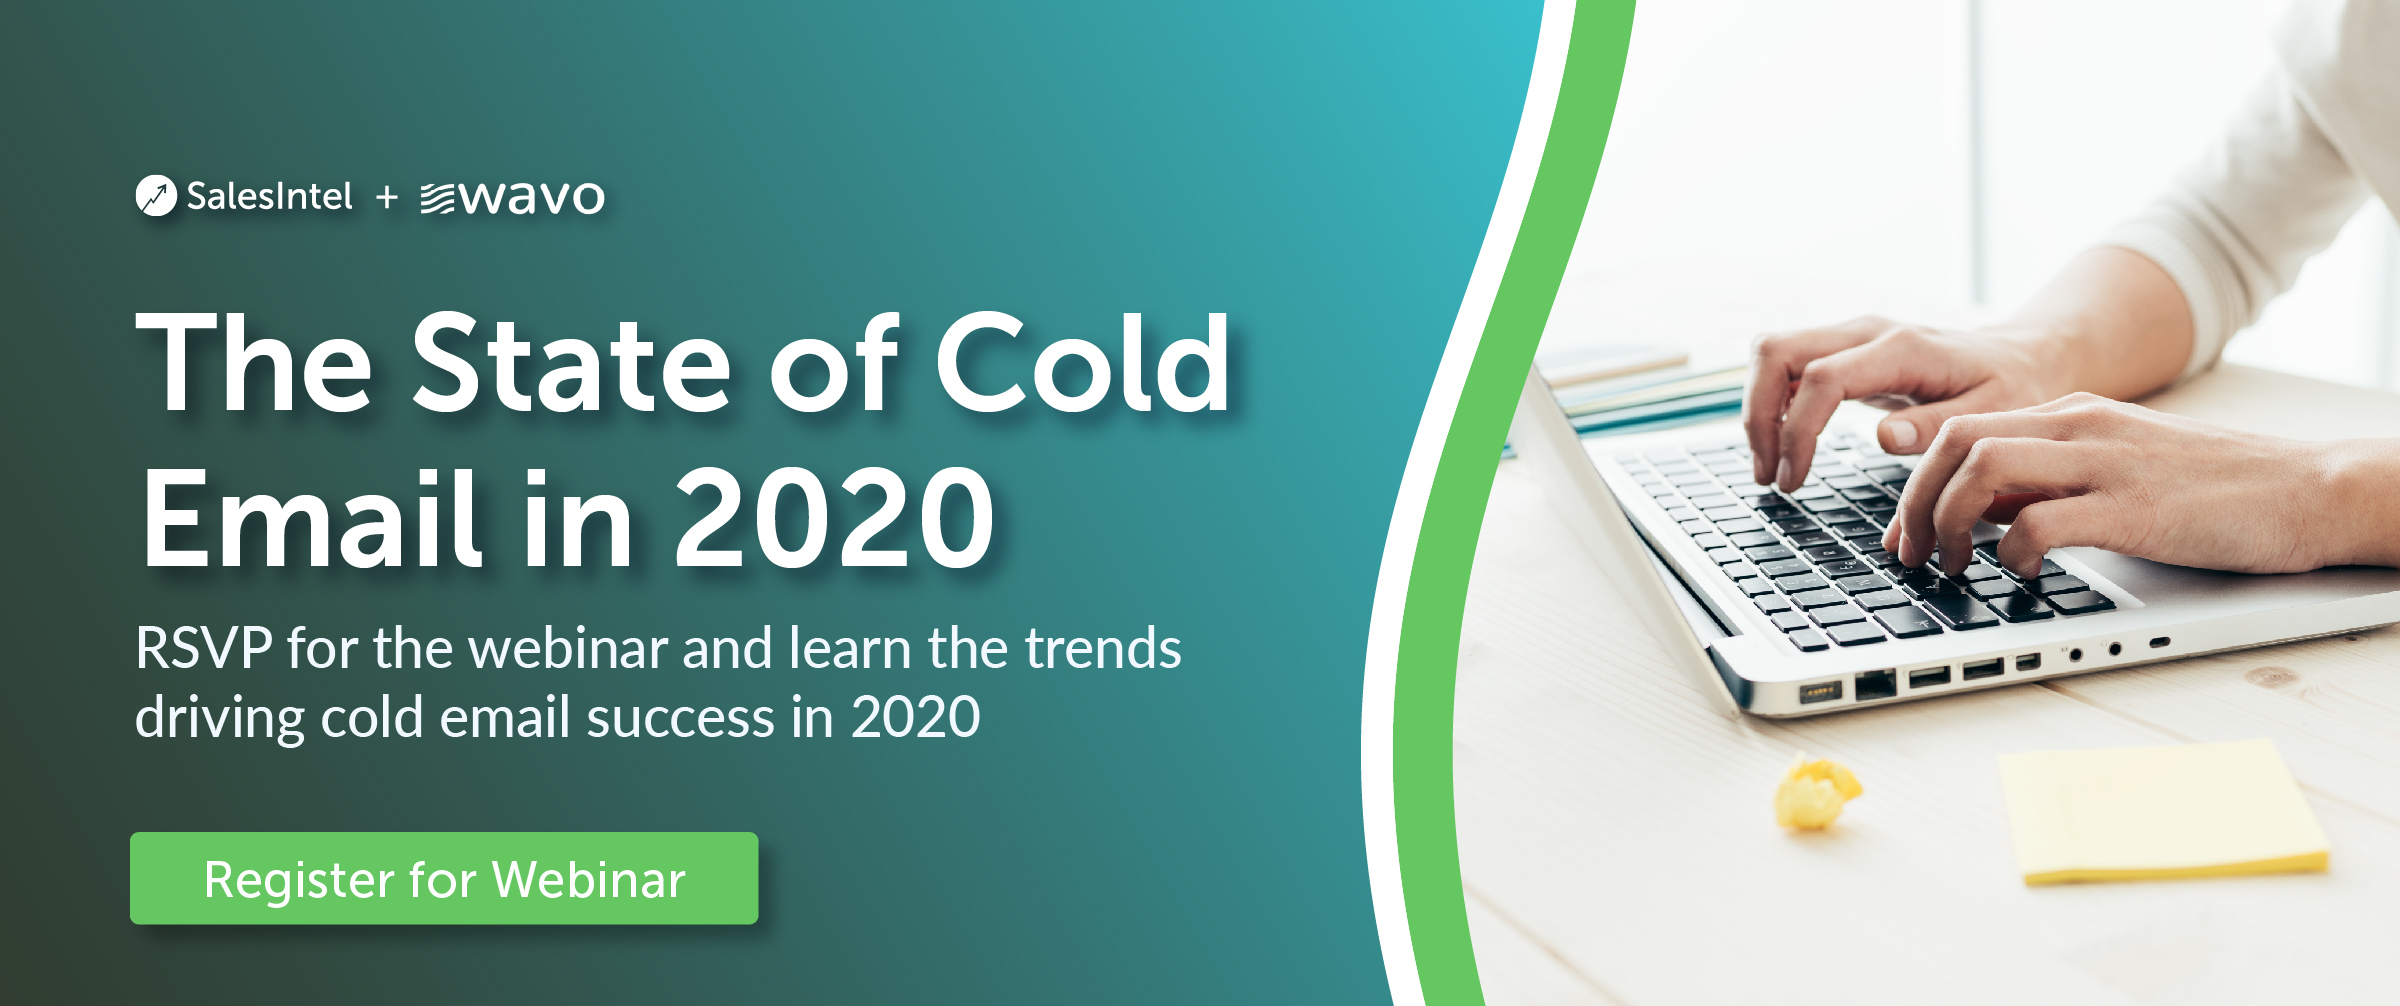 Webinar - The State of Cold Email in 2020